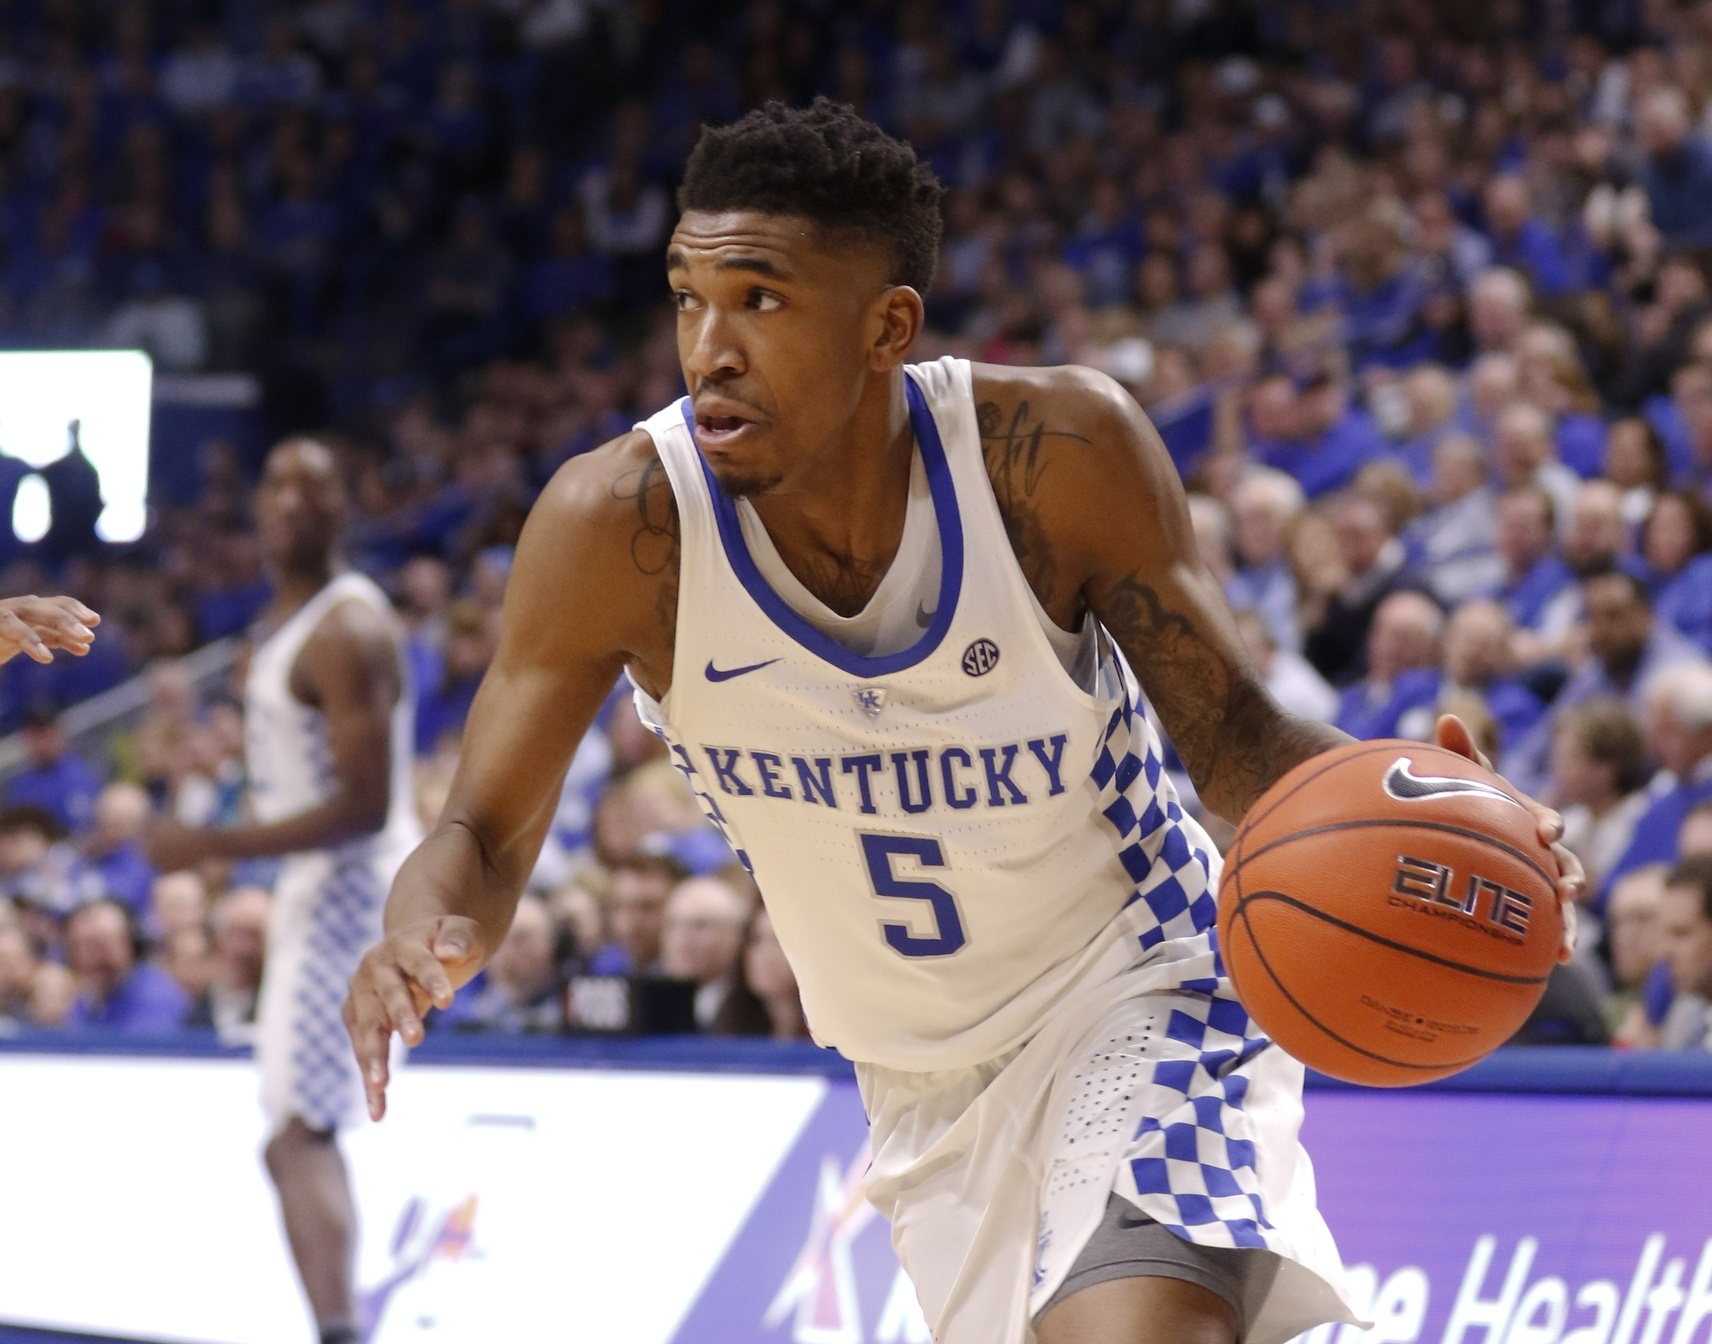 What S So Special About Kentucky Basketball: Malik Monk Is Breaking The Mold, But Is That What The NBA